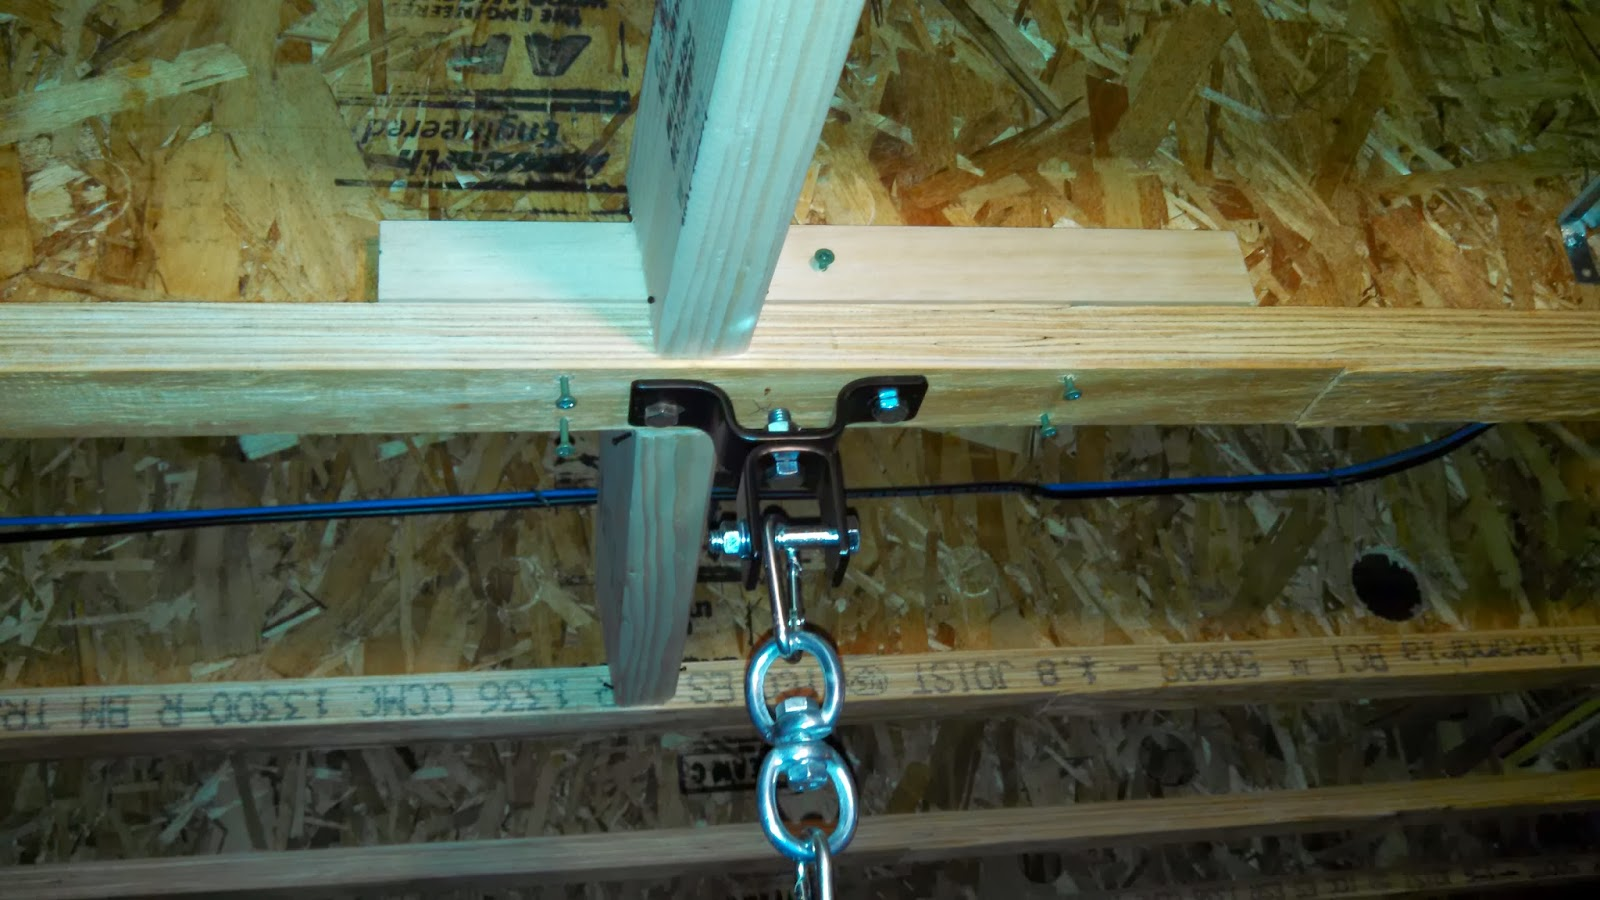 How To Hang A Heavy Bag From Drywall Ceiling Www